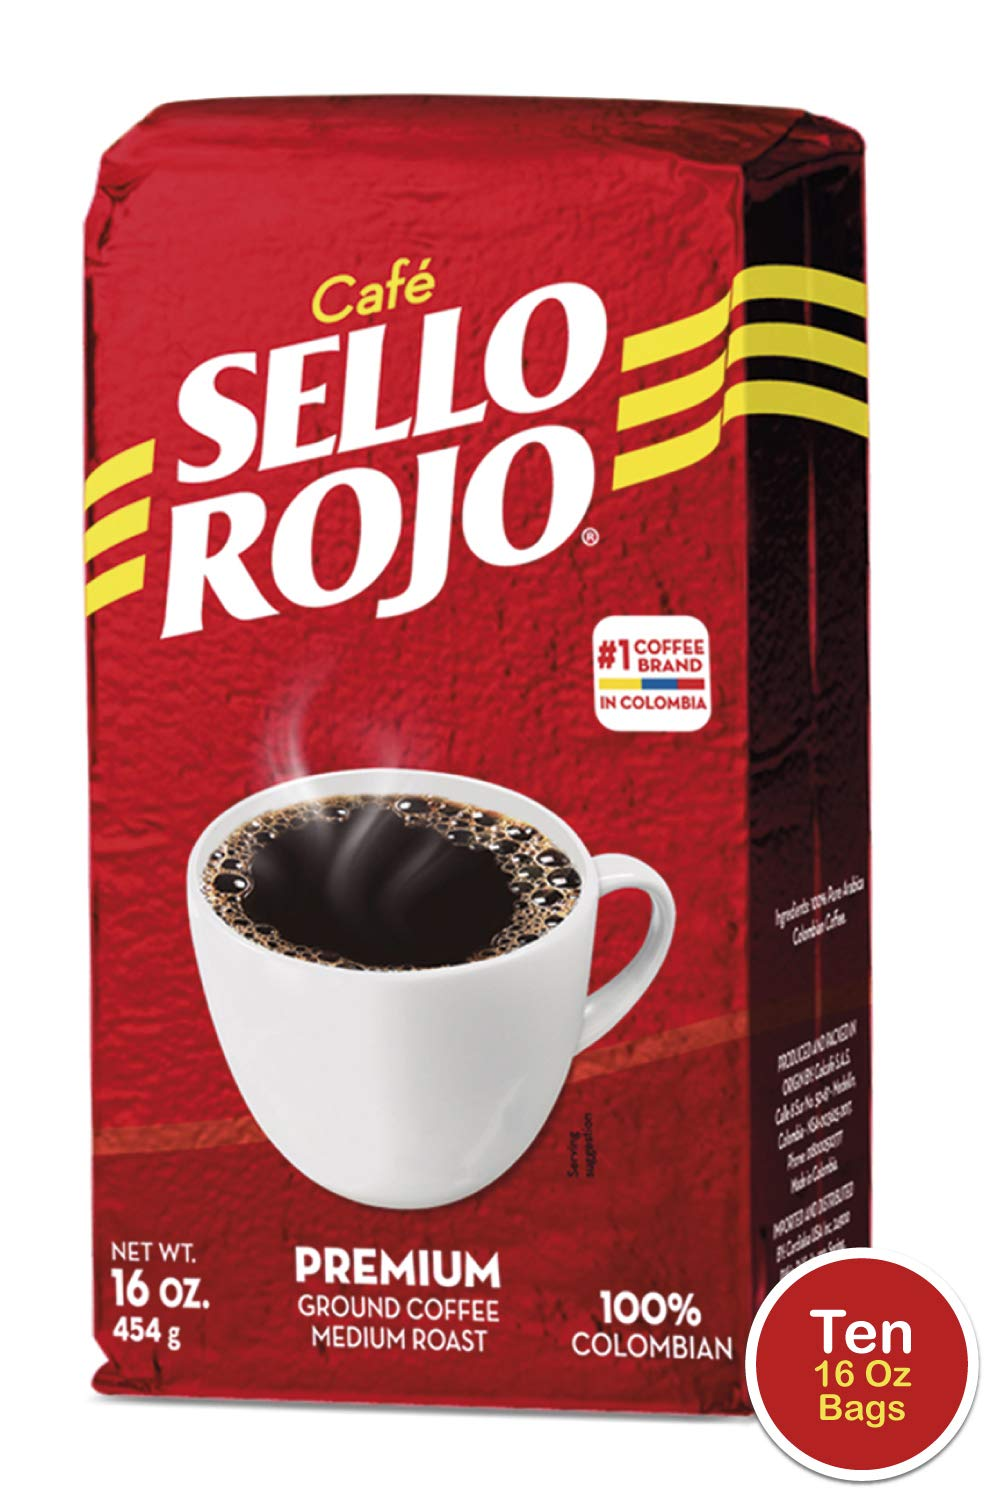 10LB Sello Rojo Coffee | Smooth and Flavorful Low Acidity Coffee with no Bitter Aftertaste or Heartburn | Medium Roast Ground Colombian Coffee | Cafe de Colombia